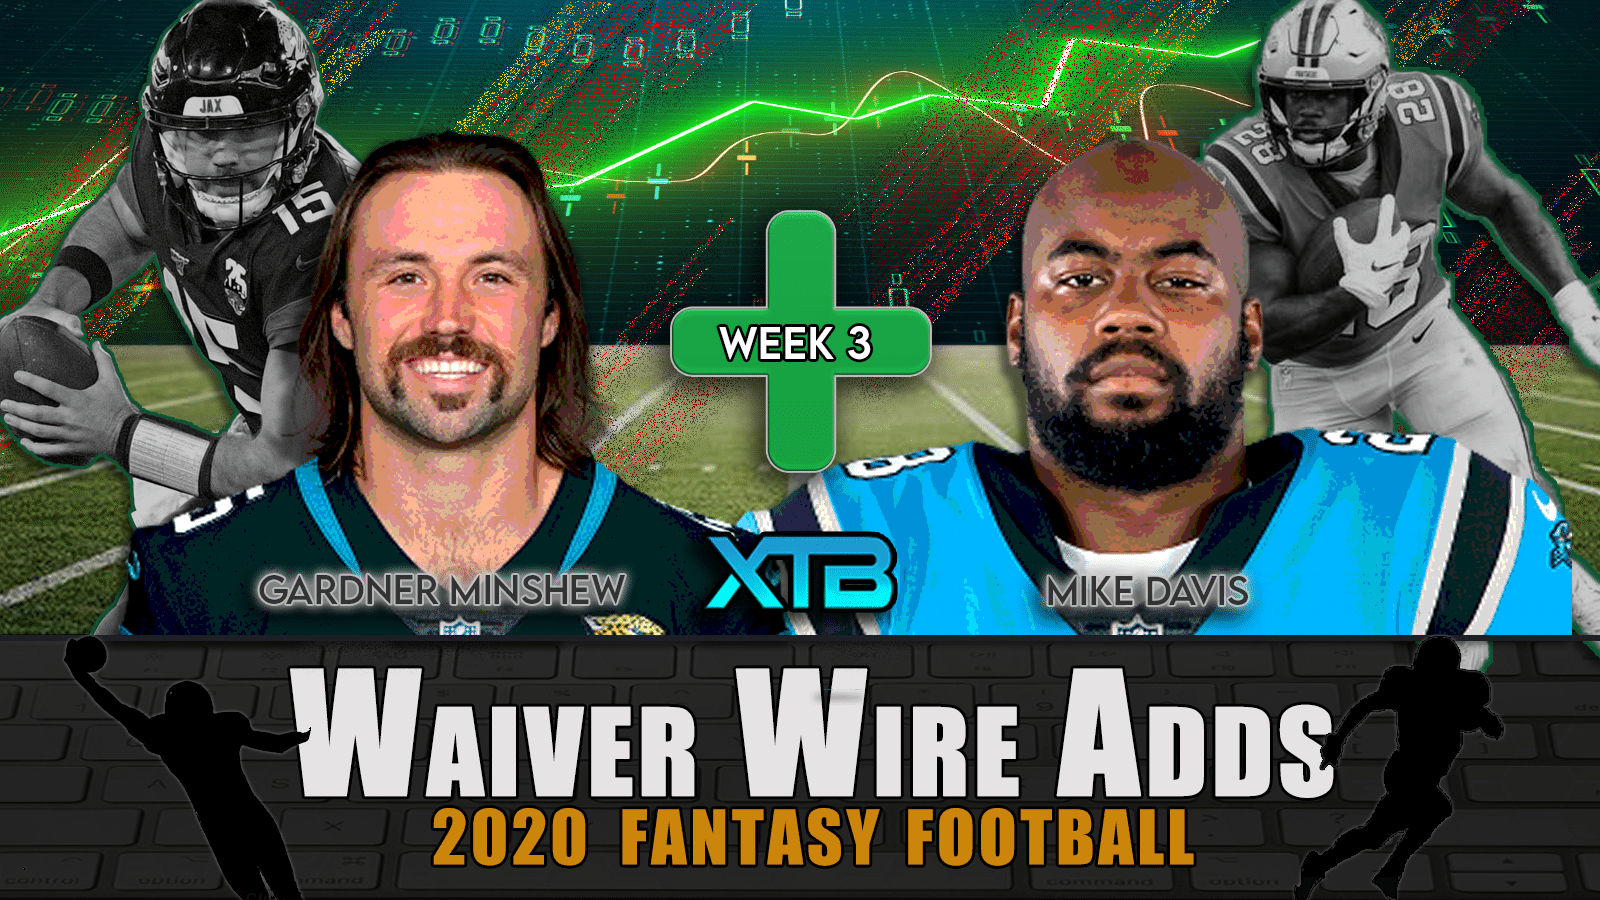 Week 3 Waiver Wire